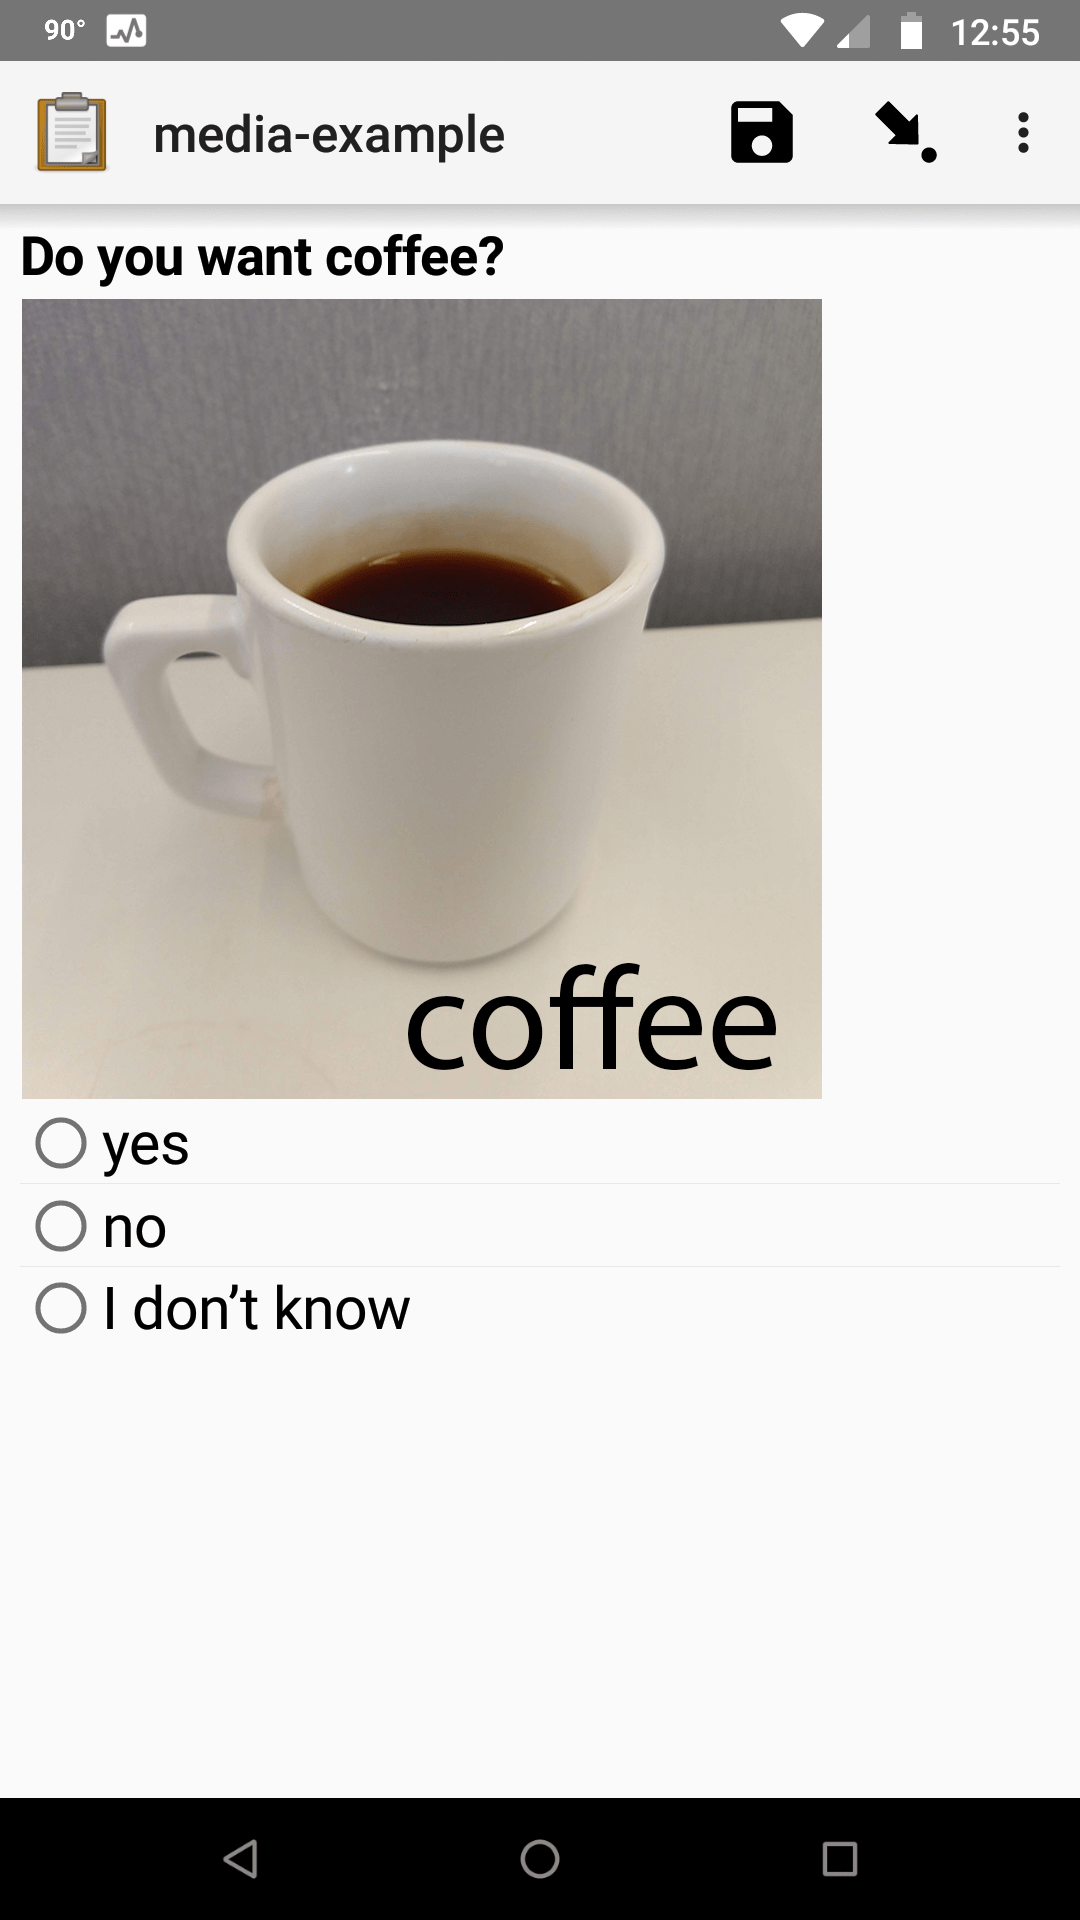 "A single select widget in Collect. The label text is ""Do you want coffee?"" The label text is accompanied by a picture of a mug of coffee. The options are ""yes"", ""no"", and ""I don't know""."